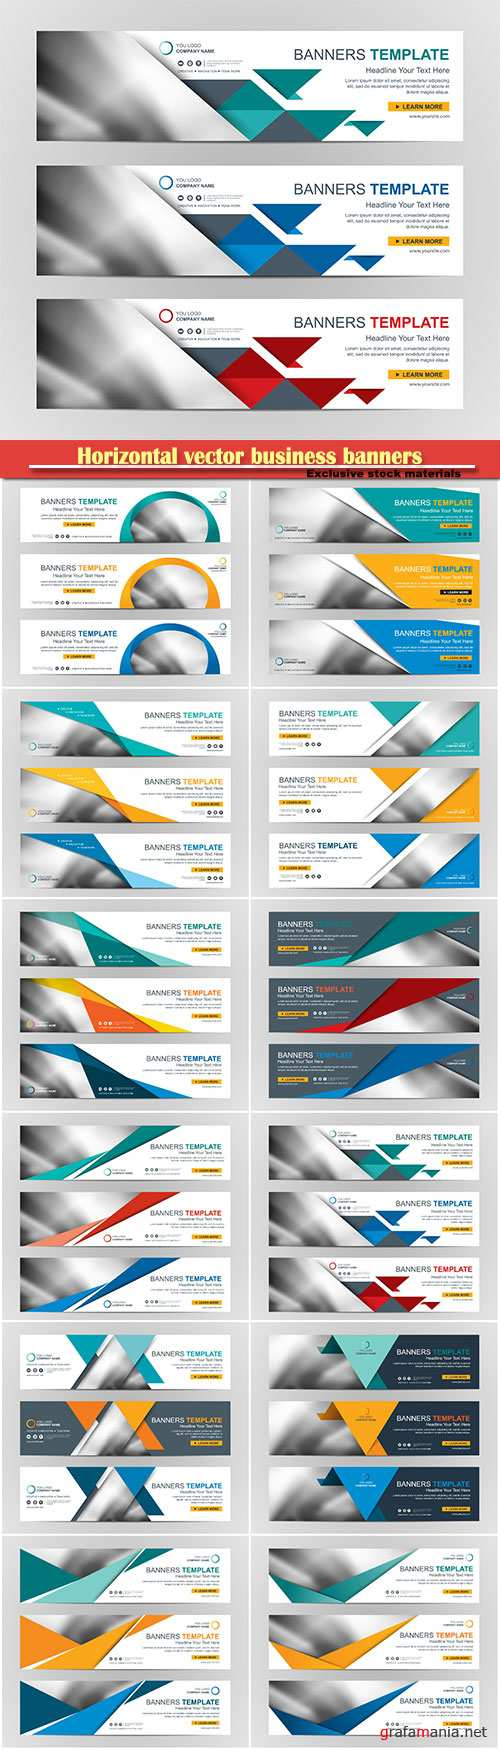 Horizontal vector business banners # 2